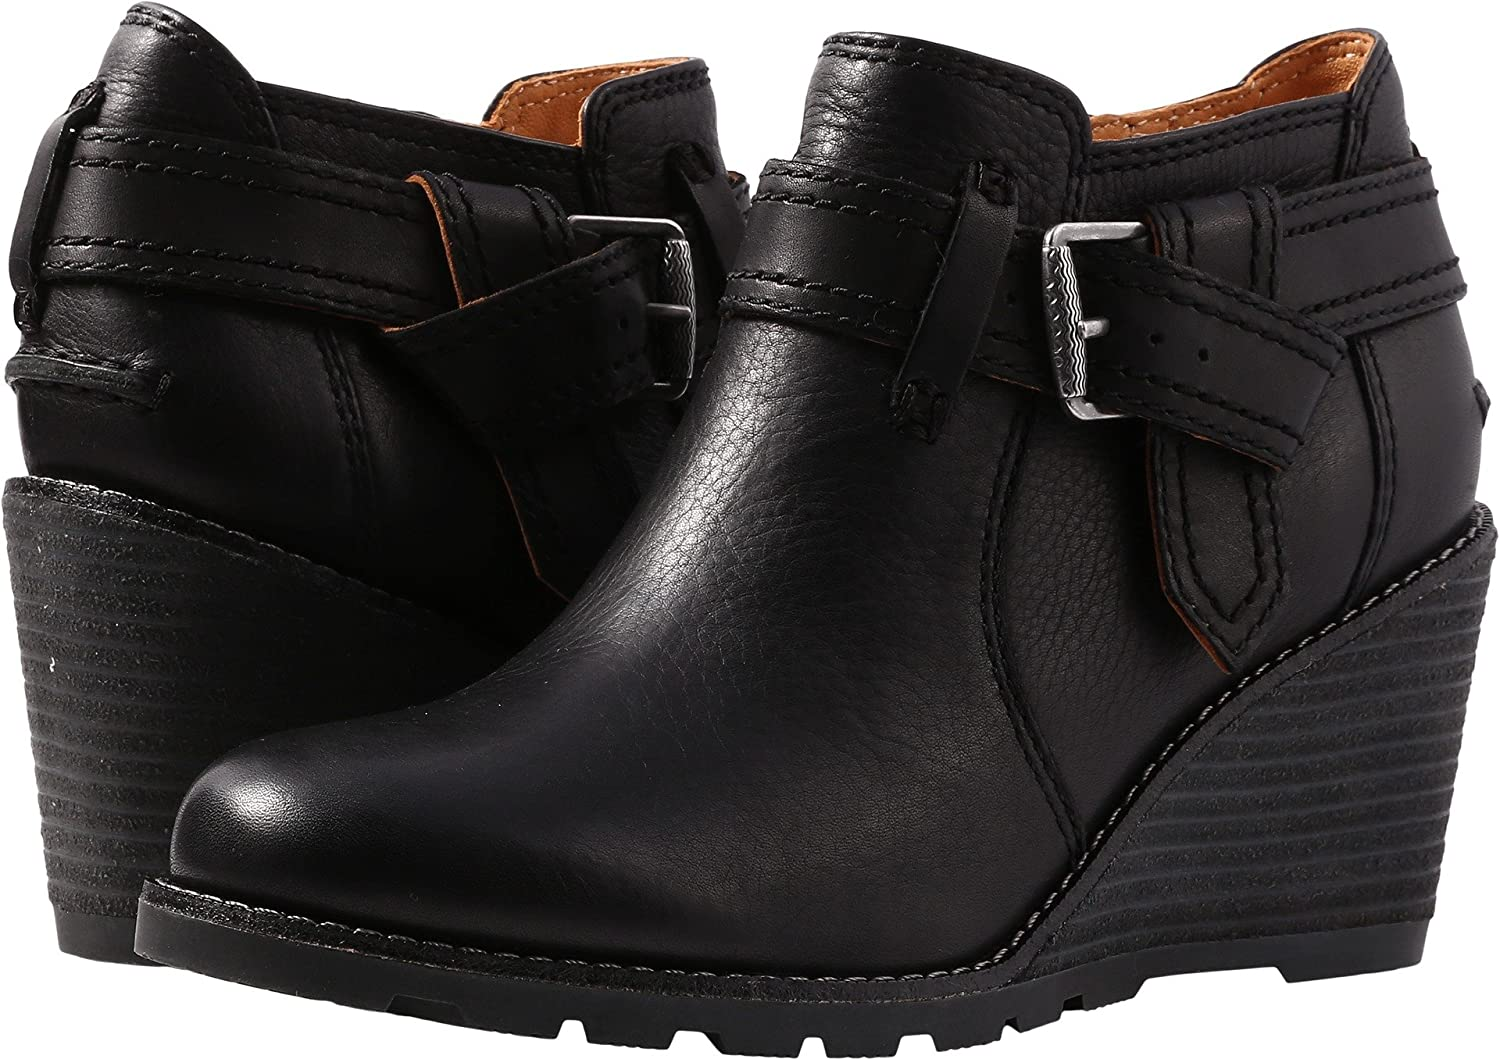 Womens Liberty Rosa Ankle Boot, Black, 8.5 Medium US Sperry Top-Sider